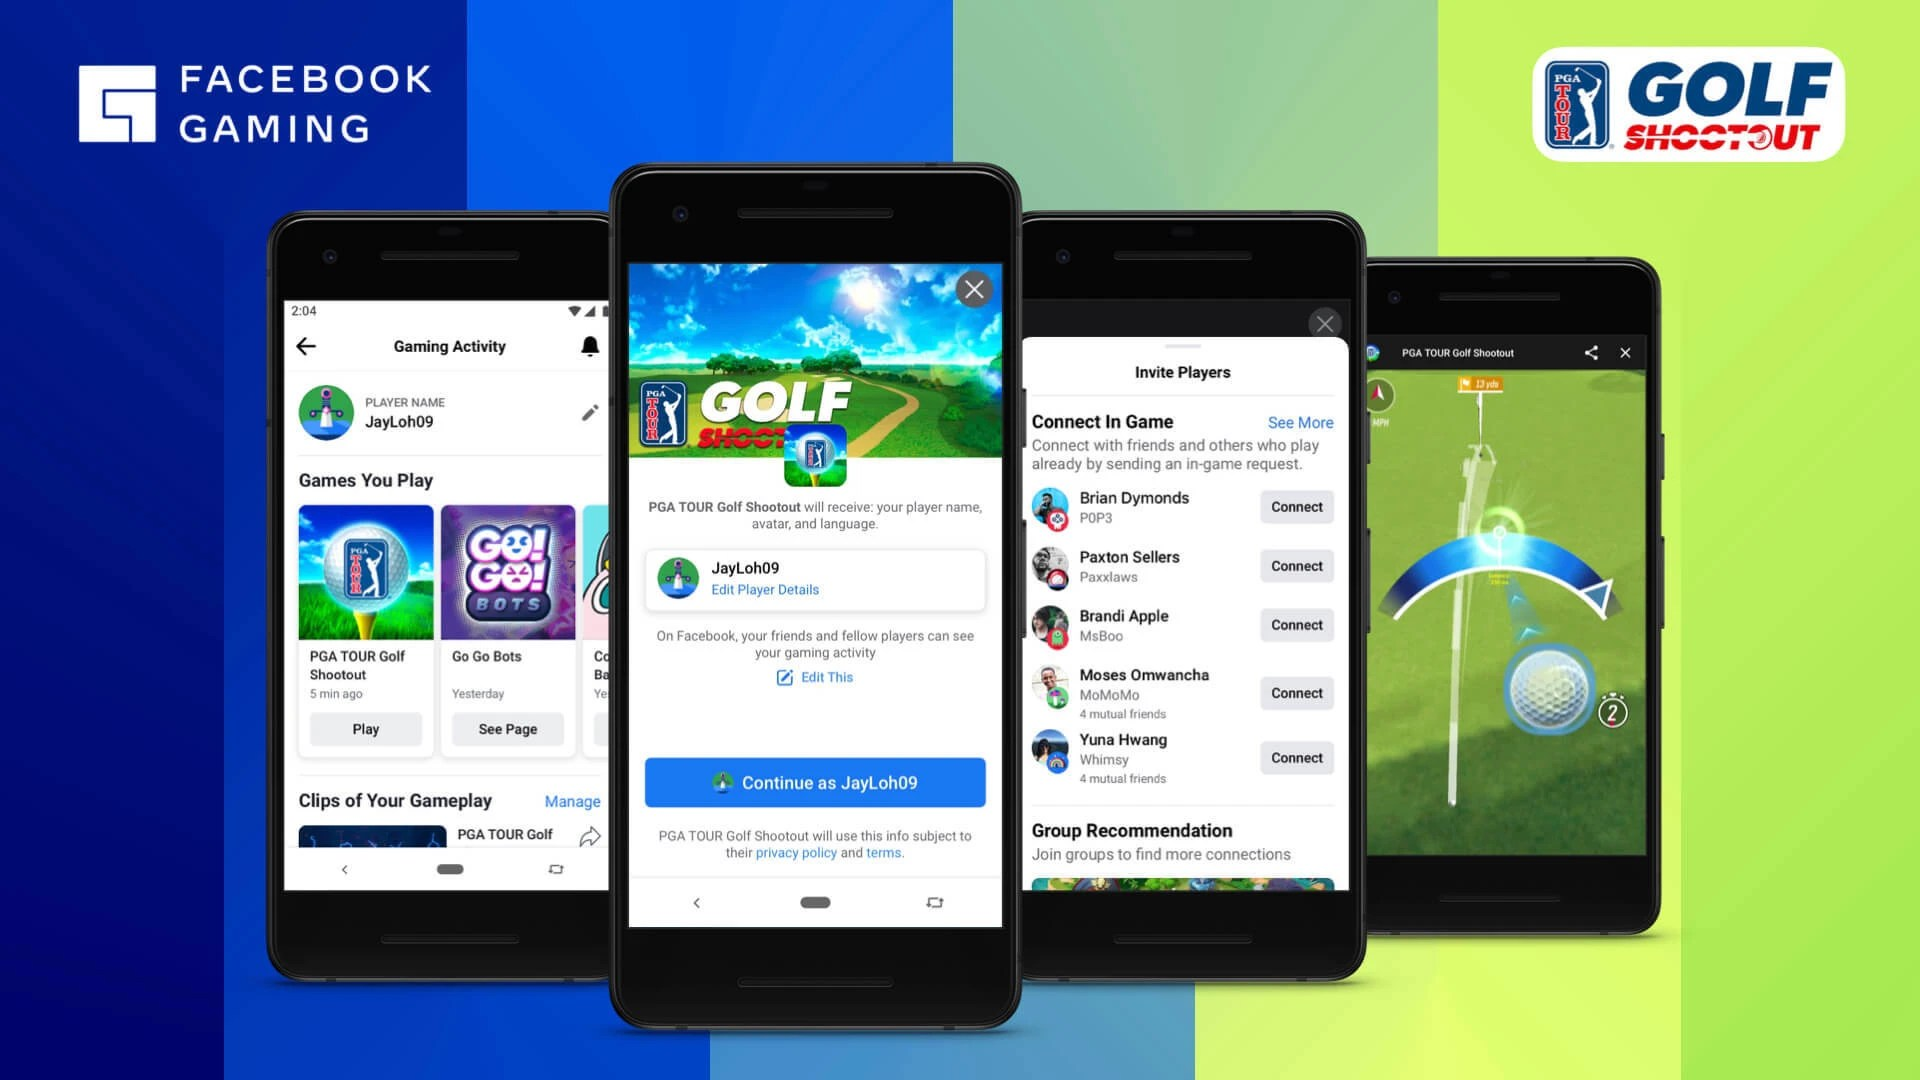 Facebook launches free cloud gaming service for Android